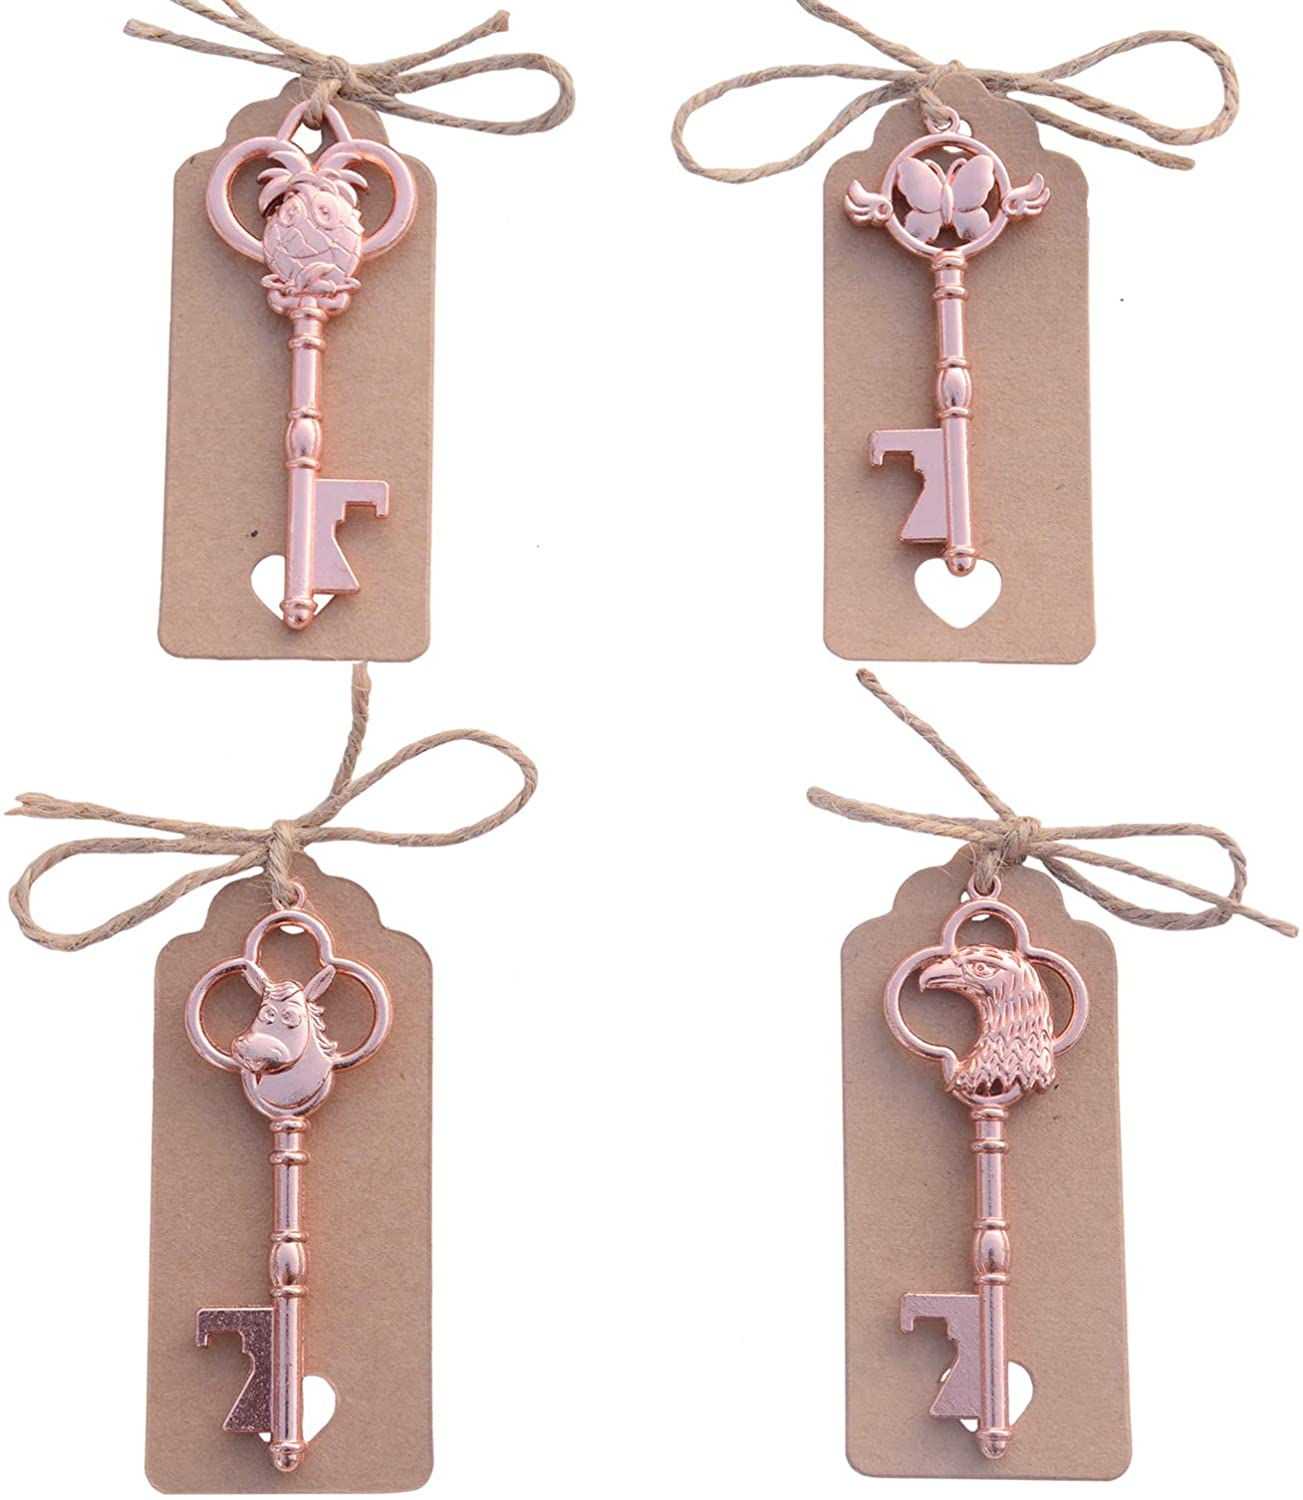 Yansanido Pack of 40 Mixed 4 Styles Rose Gold Skeleton Key Bottle Opener with Escort Tag Card and Twine for Wedding Favors for Guests Party Favors (mixed 4 styles Rose Gold)